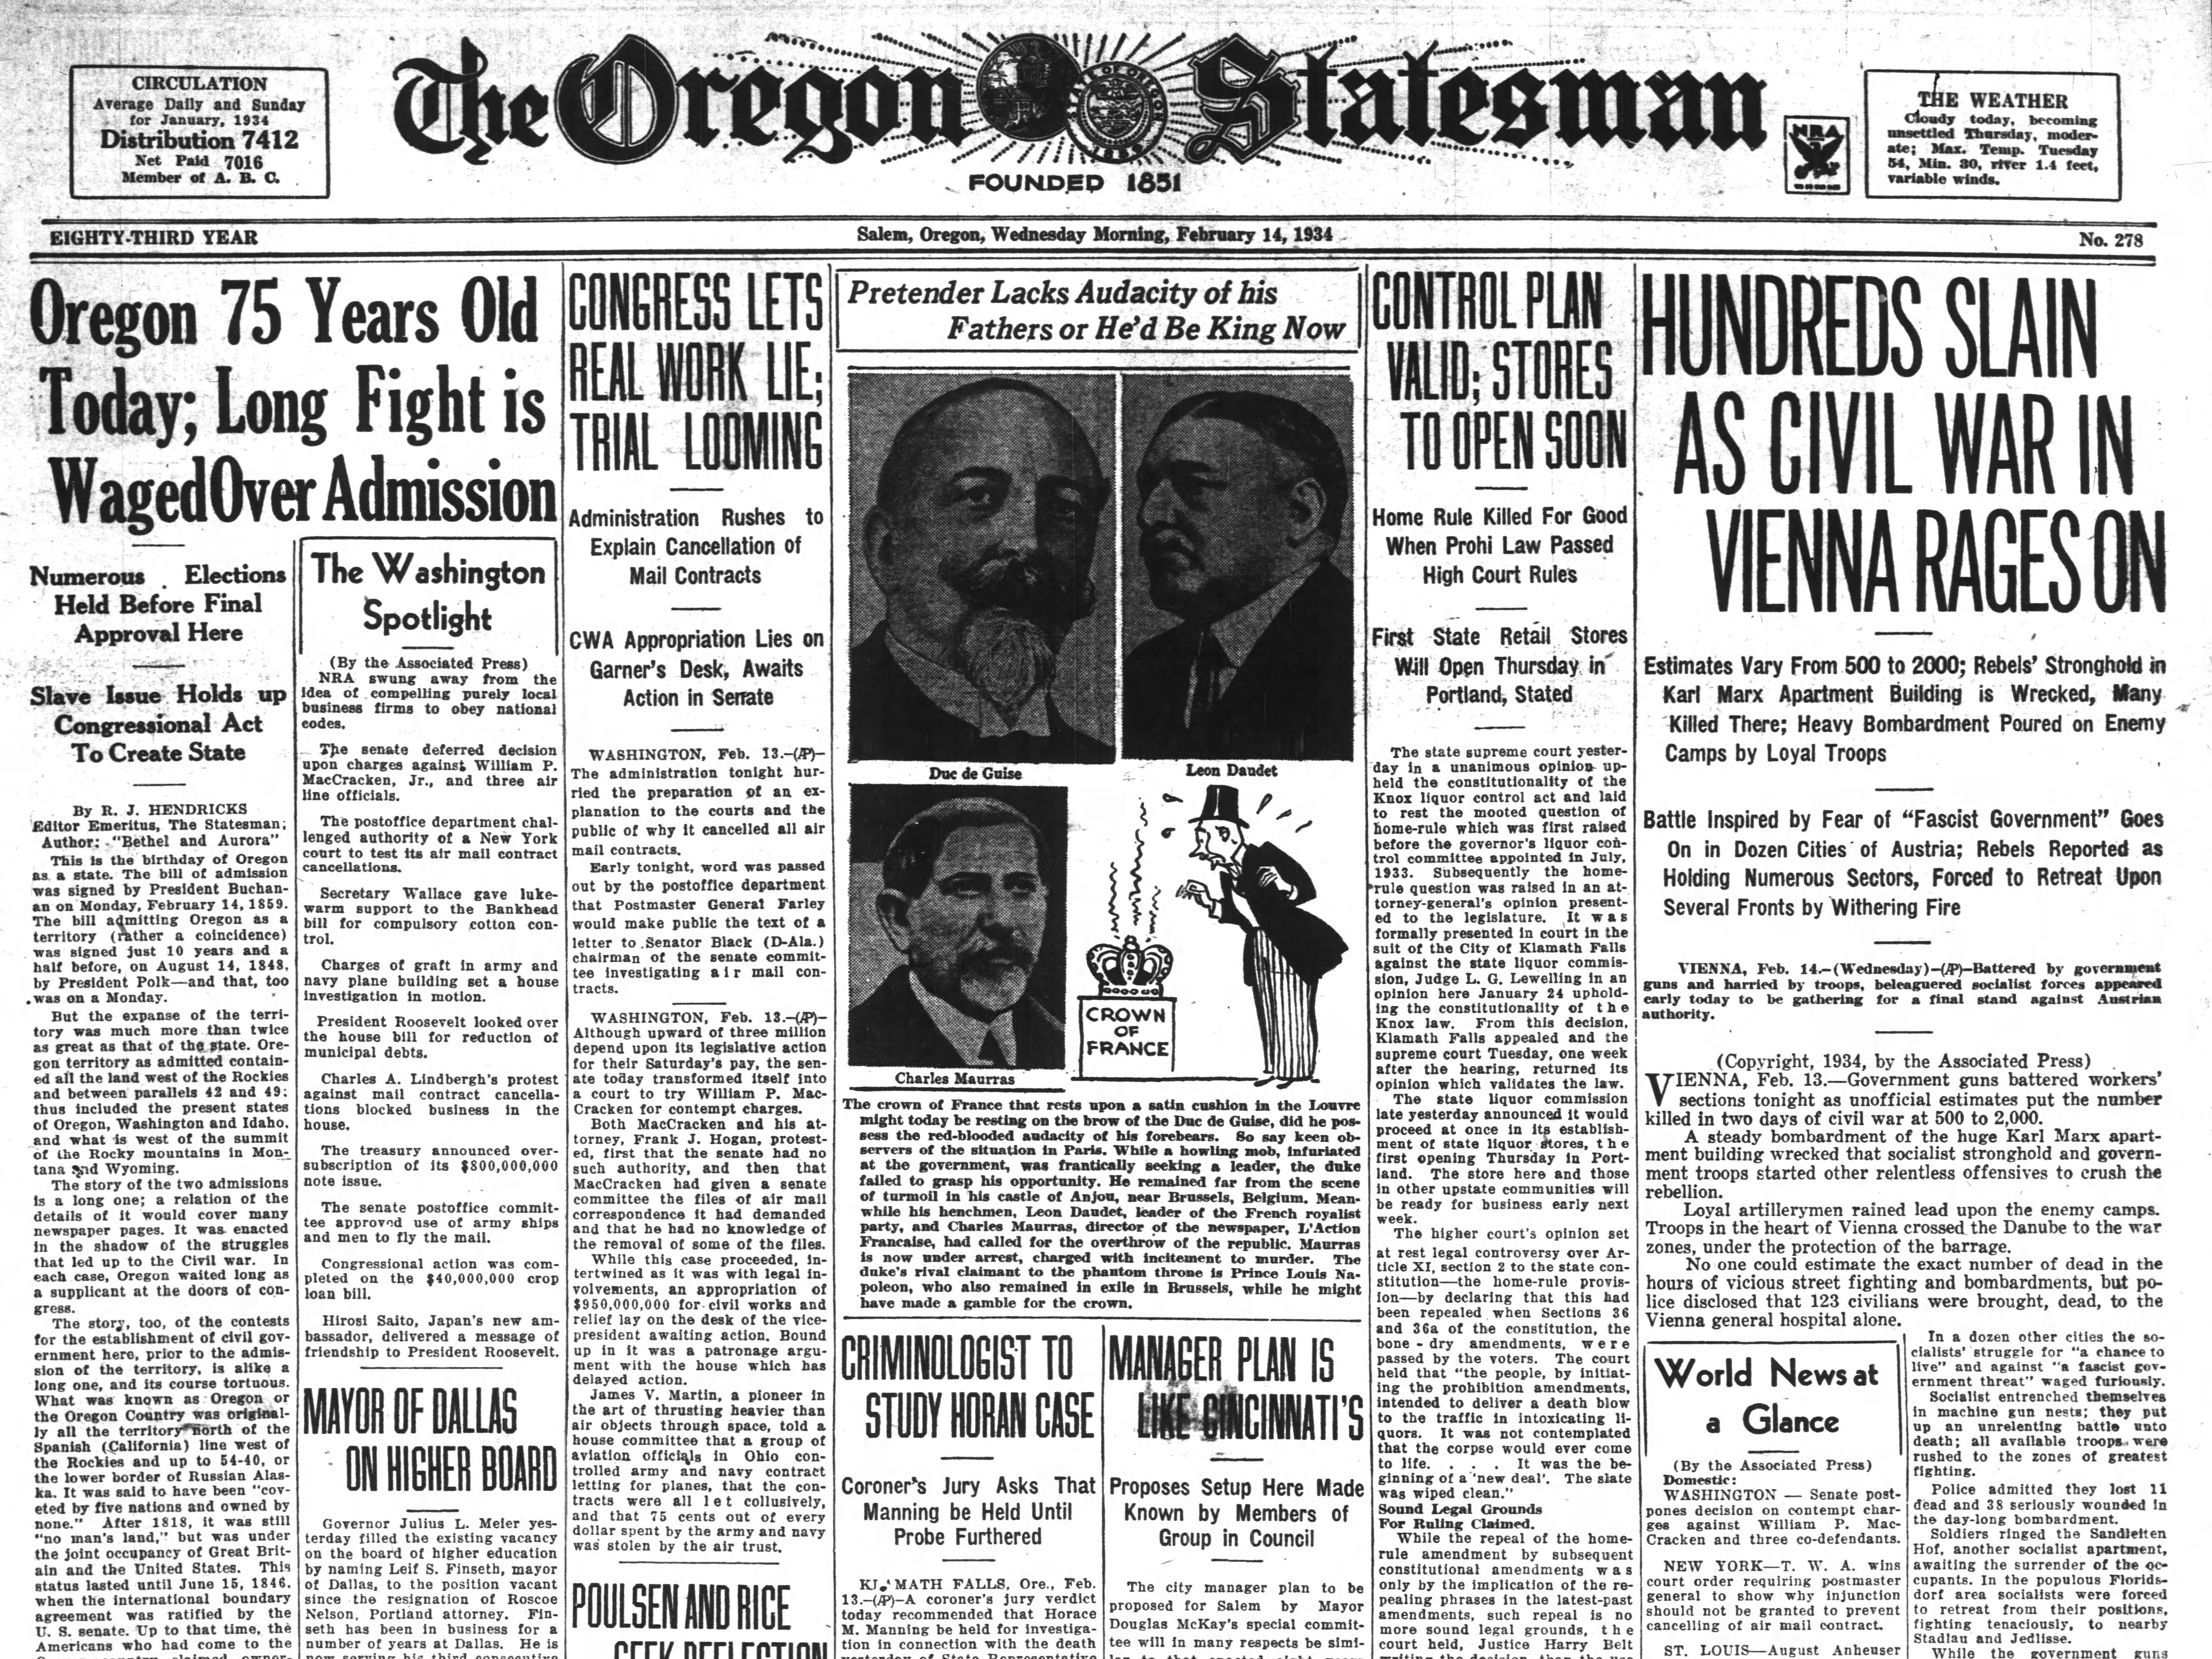 The front page of the Oregon Statesman from Feb. 14, 1934.